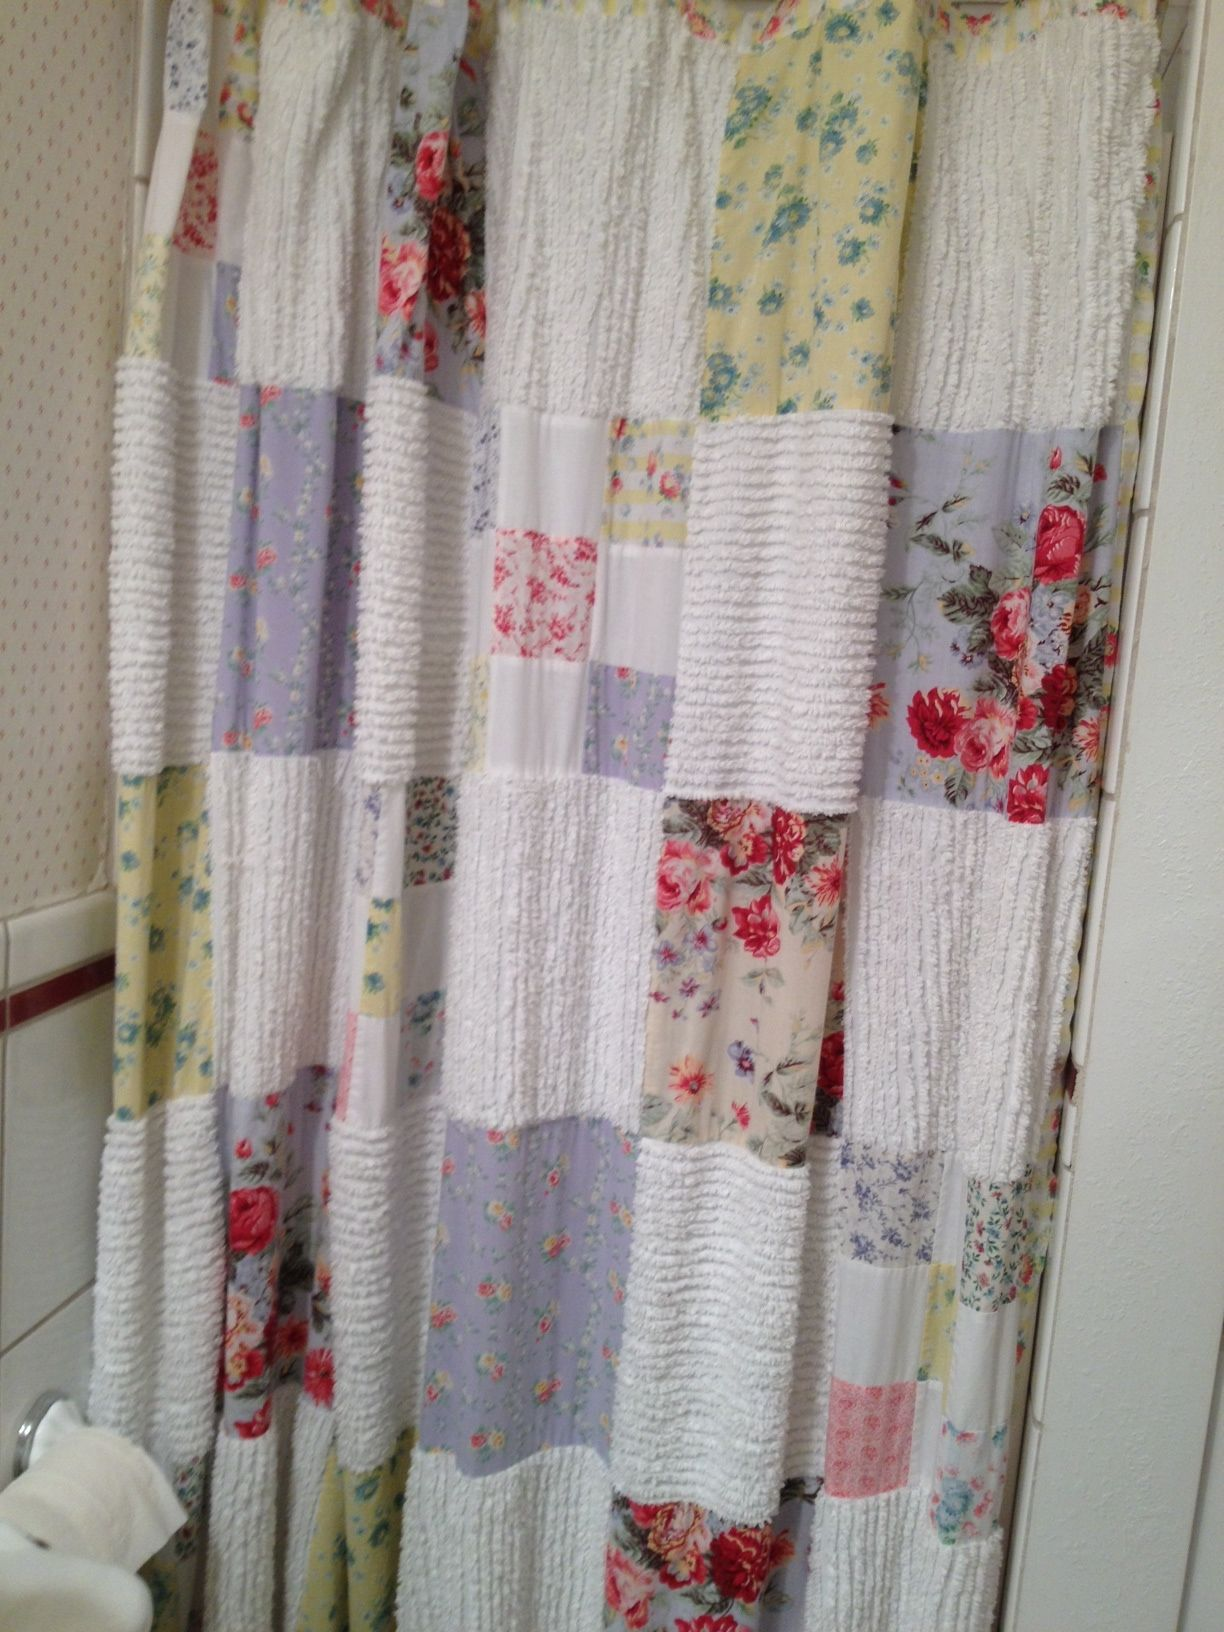 Shower curtain quilt pattern - Patchwork Shower Curtain Do In Cotton From Sheets And Pillowcases Etc